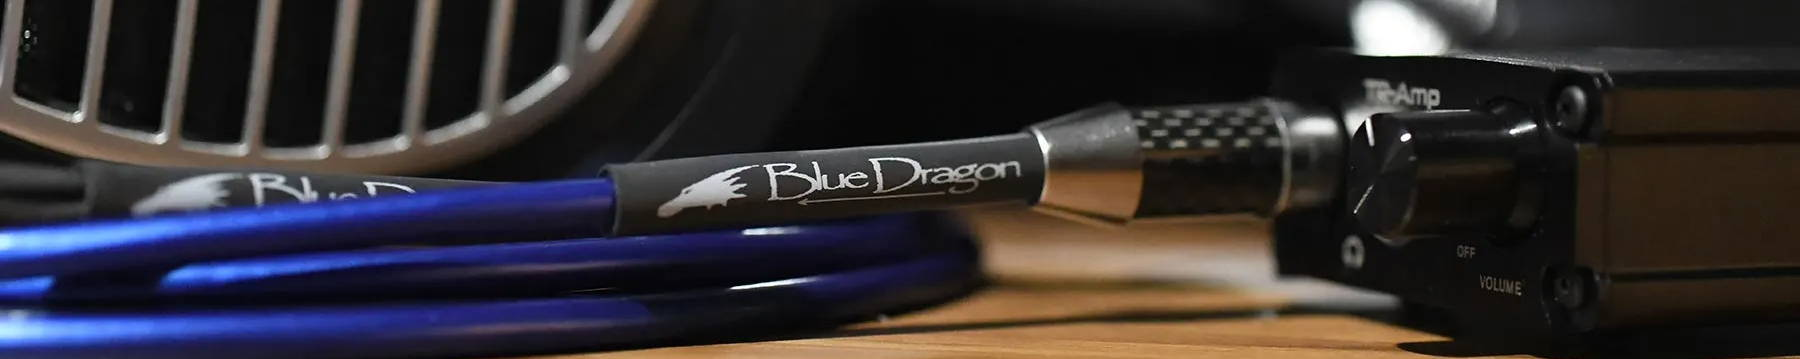 Blue Dragon Premium headphone cable